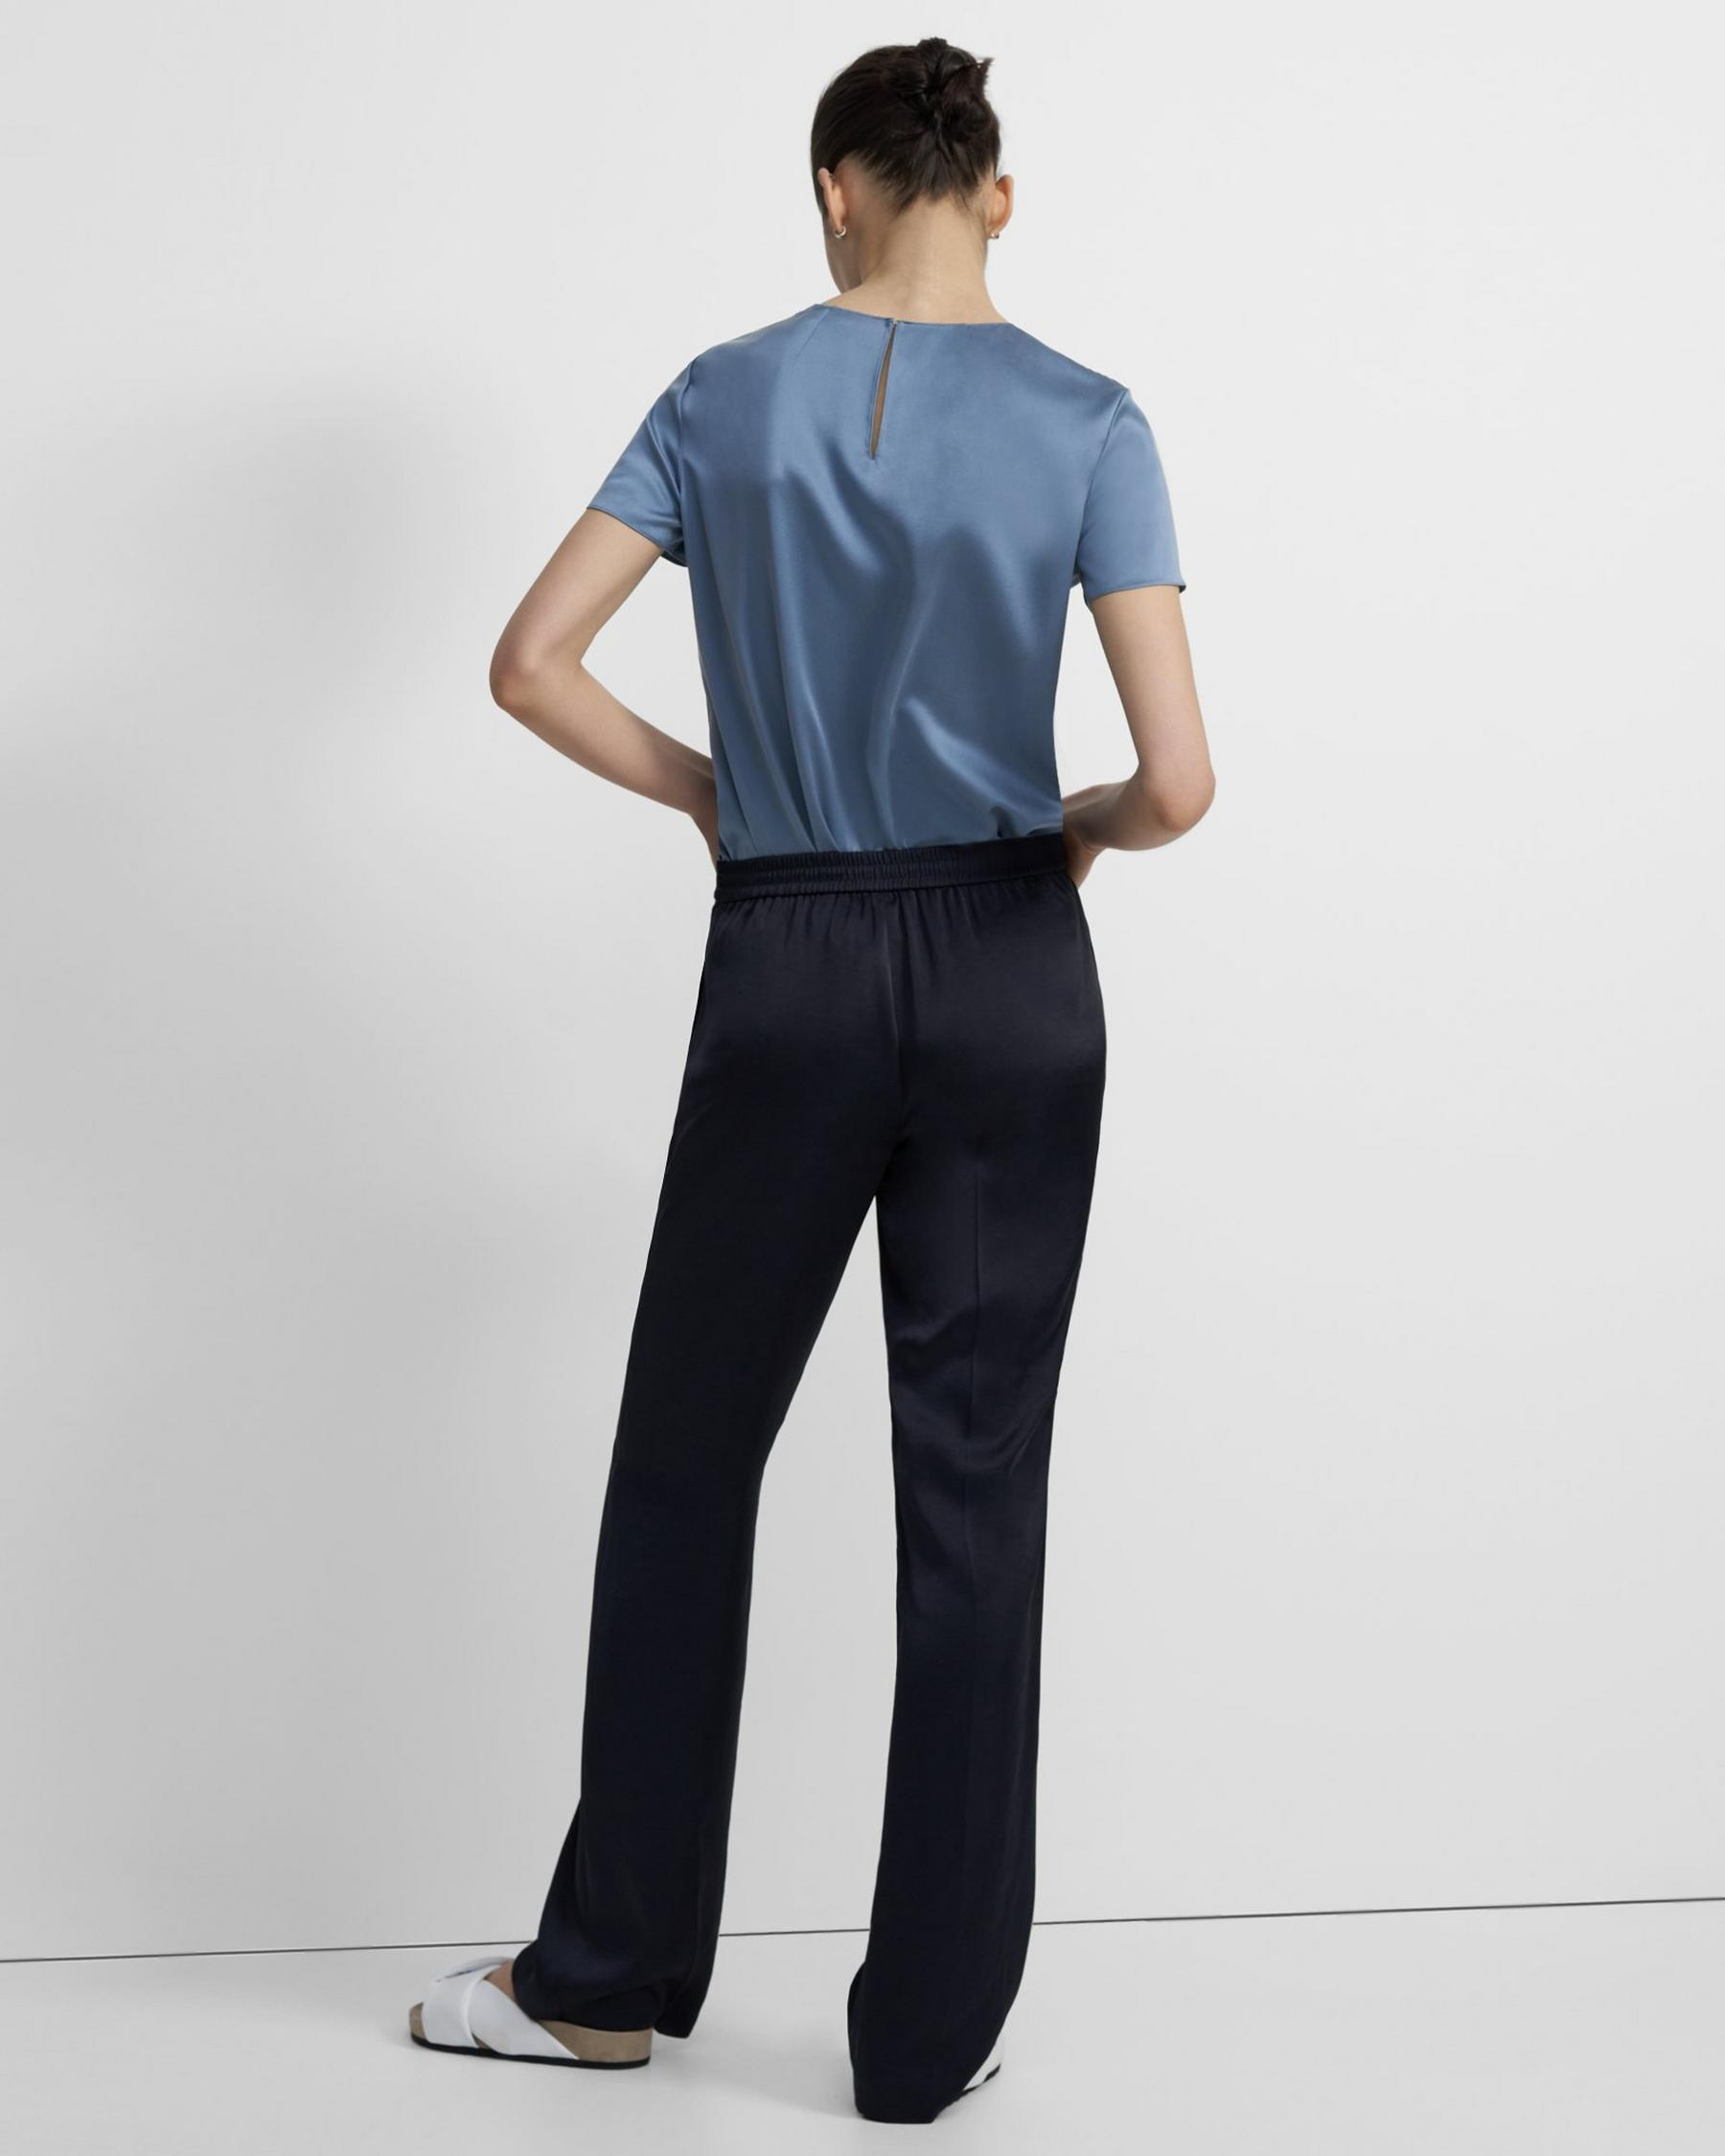 Straight-Leg Pull On Pant Pant in Crushed Satin 2